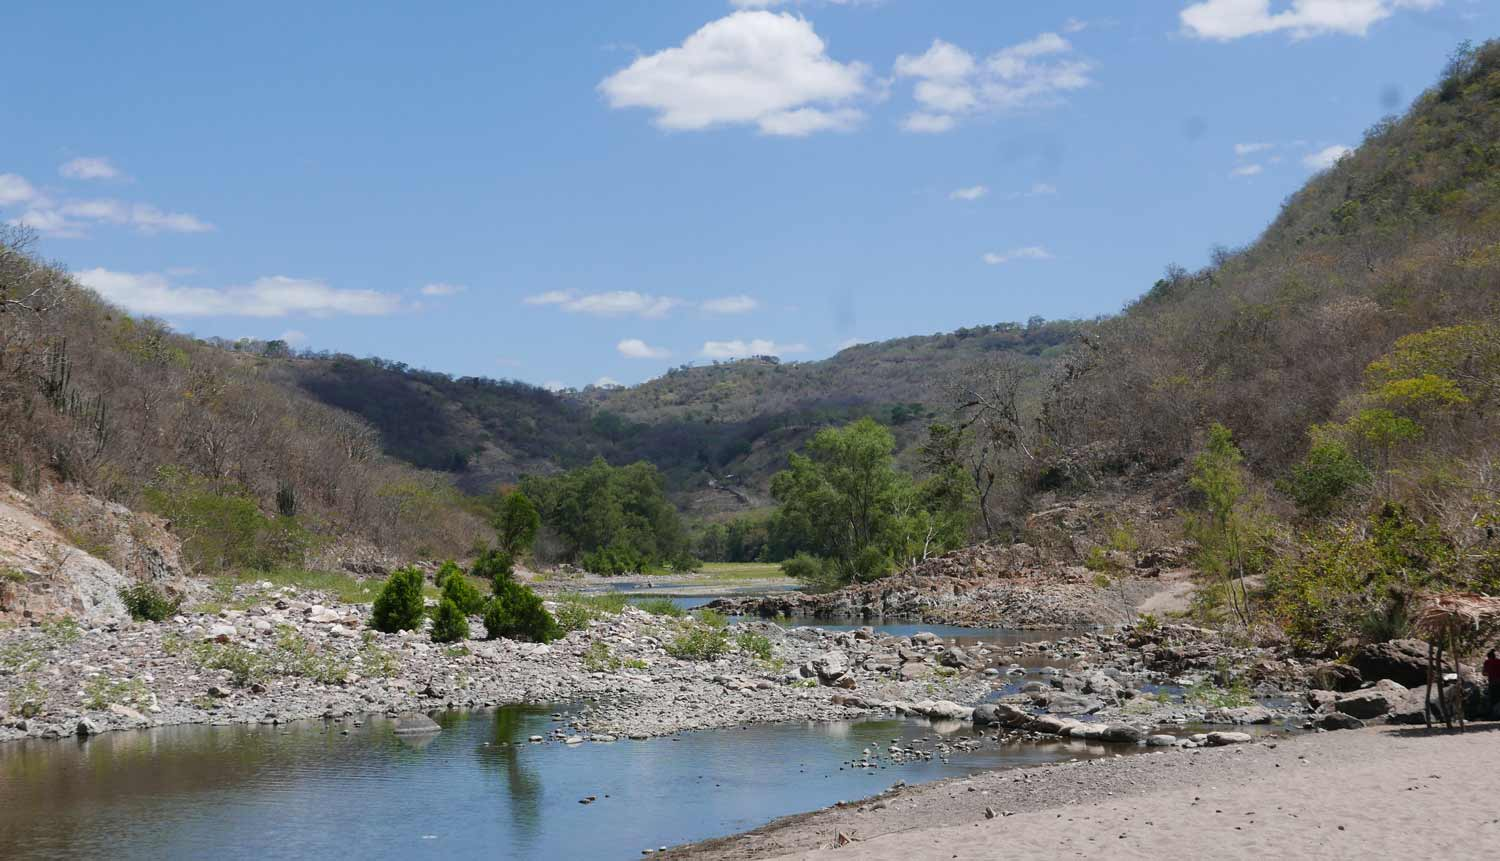 The end of Somoto canyon: the valley